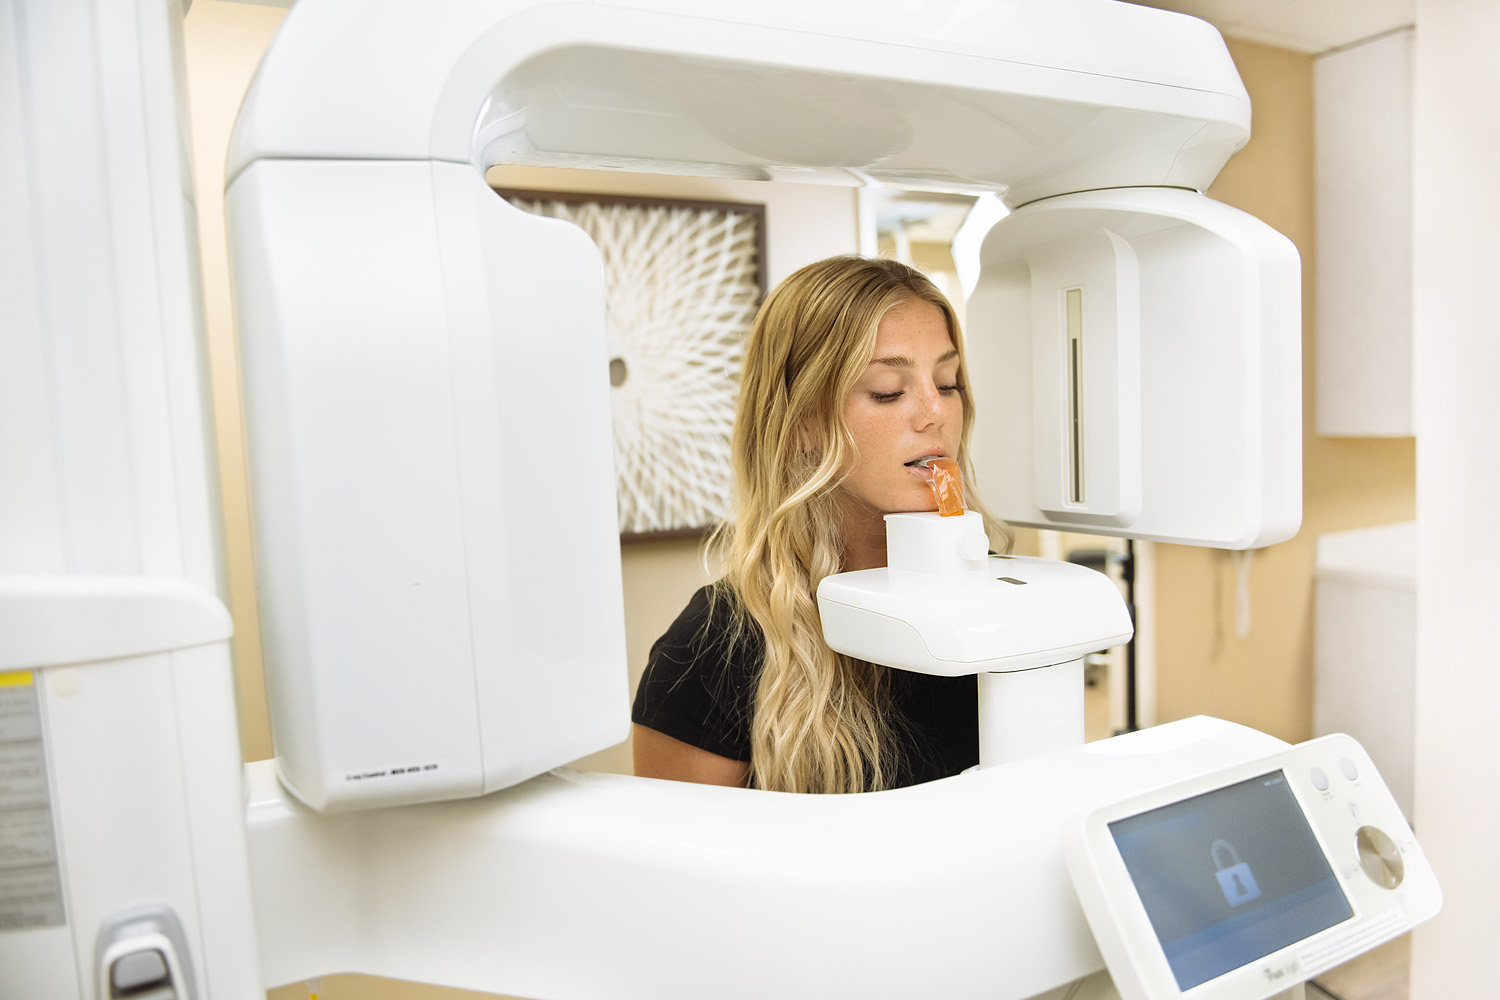 patient getting x-ray from high-tech machine